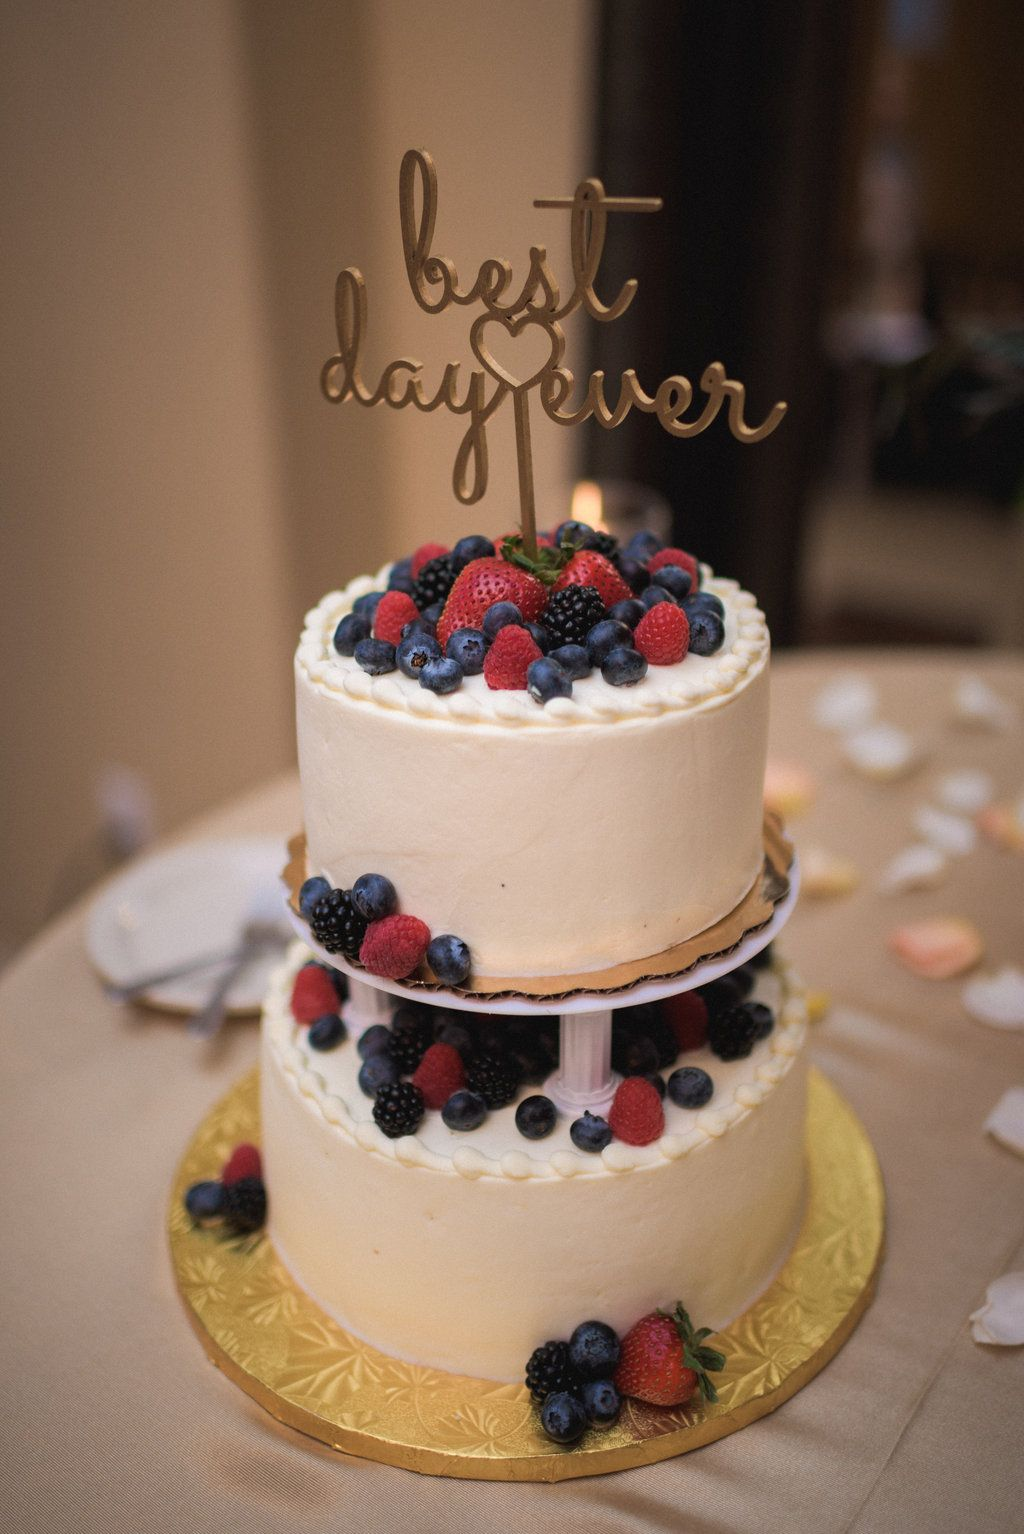 whole foods berry chantilly wedding cake 9 19 15 pinterest wedding cake berry and cake. Black Bedroom Furniture Sets. Home Design Ideas